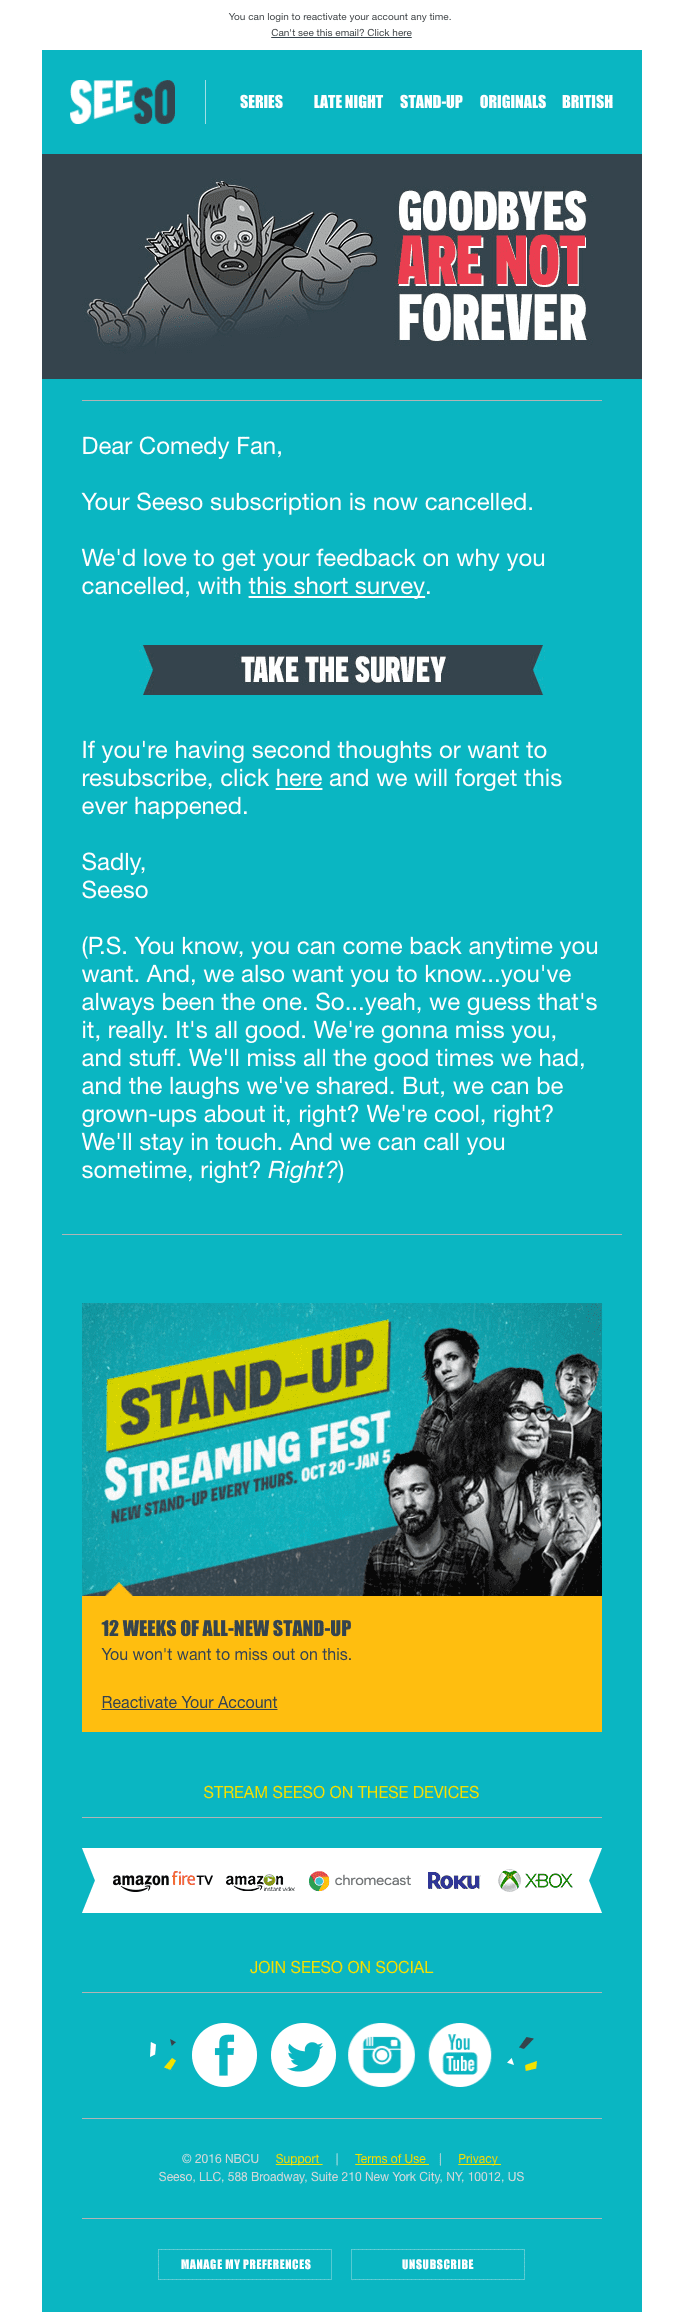 Seeso's cancellation email example